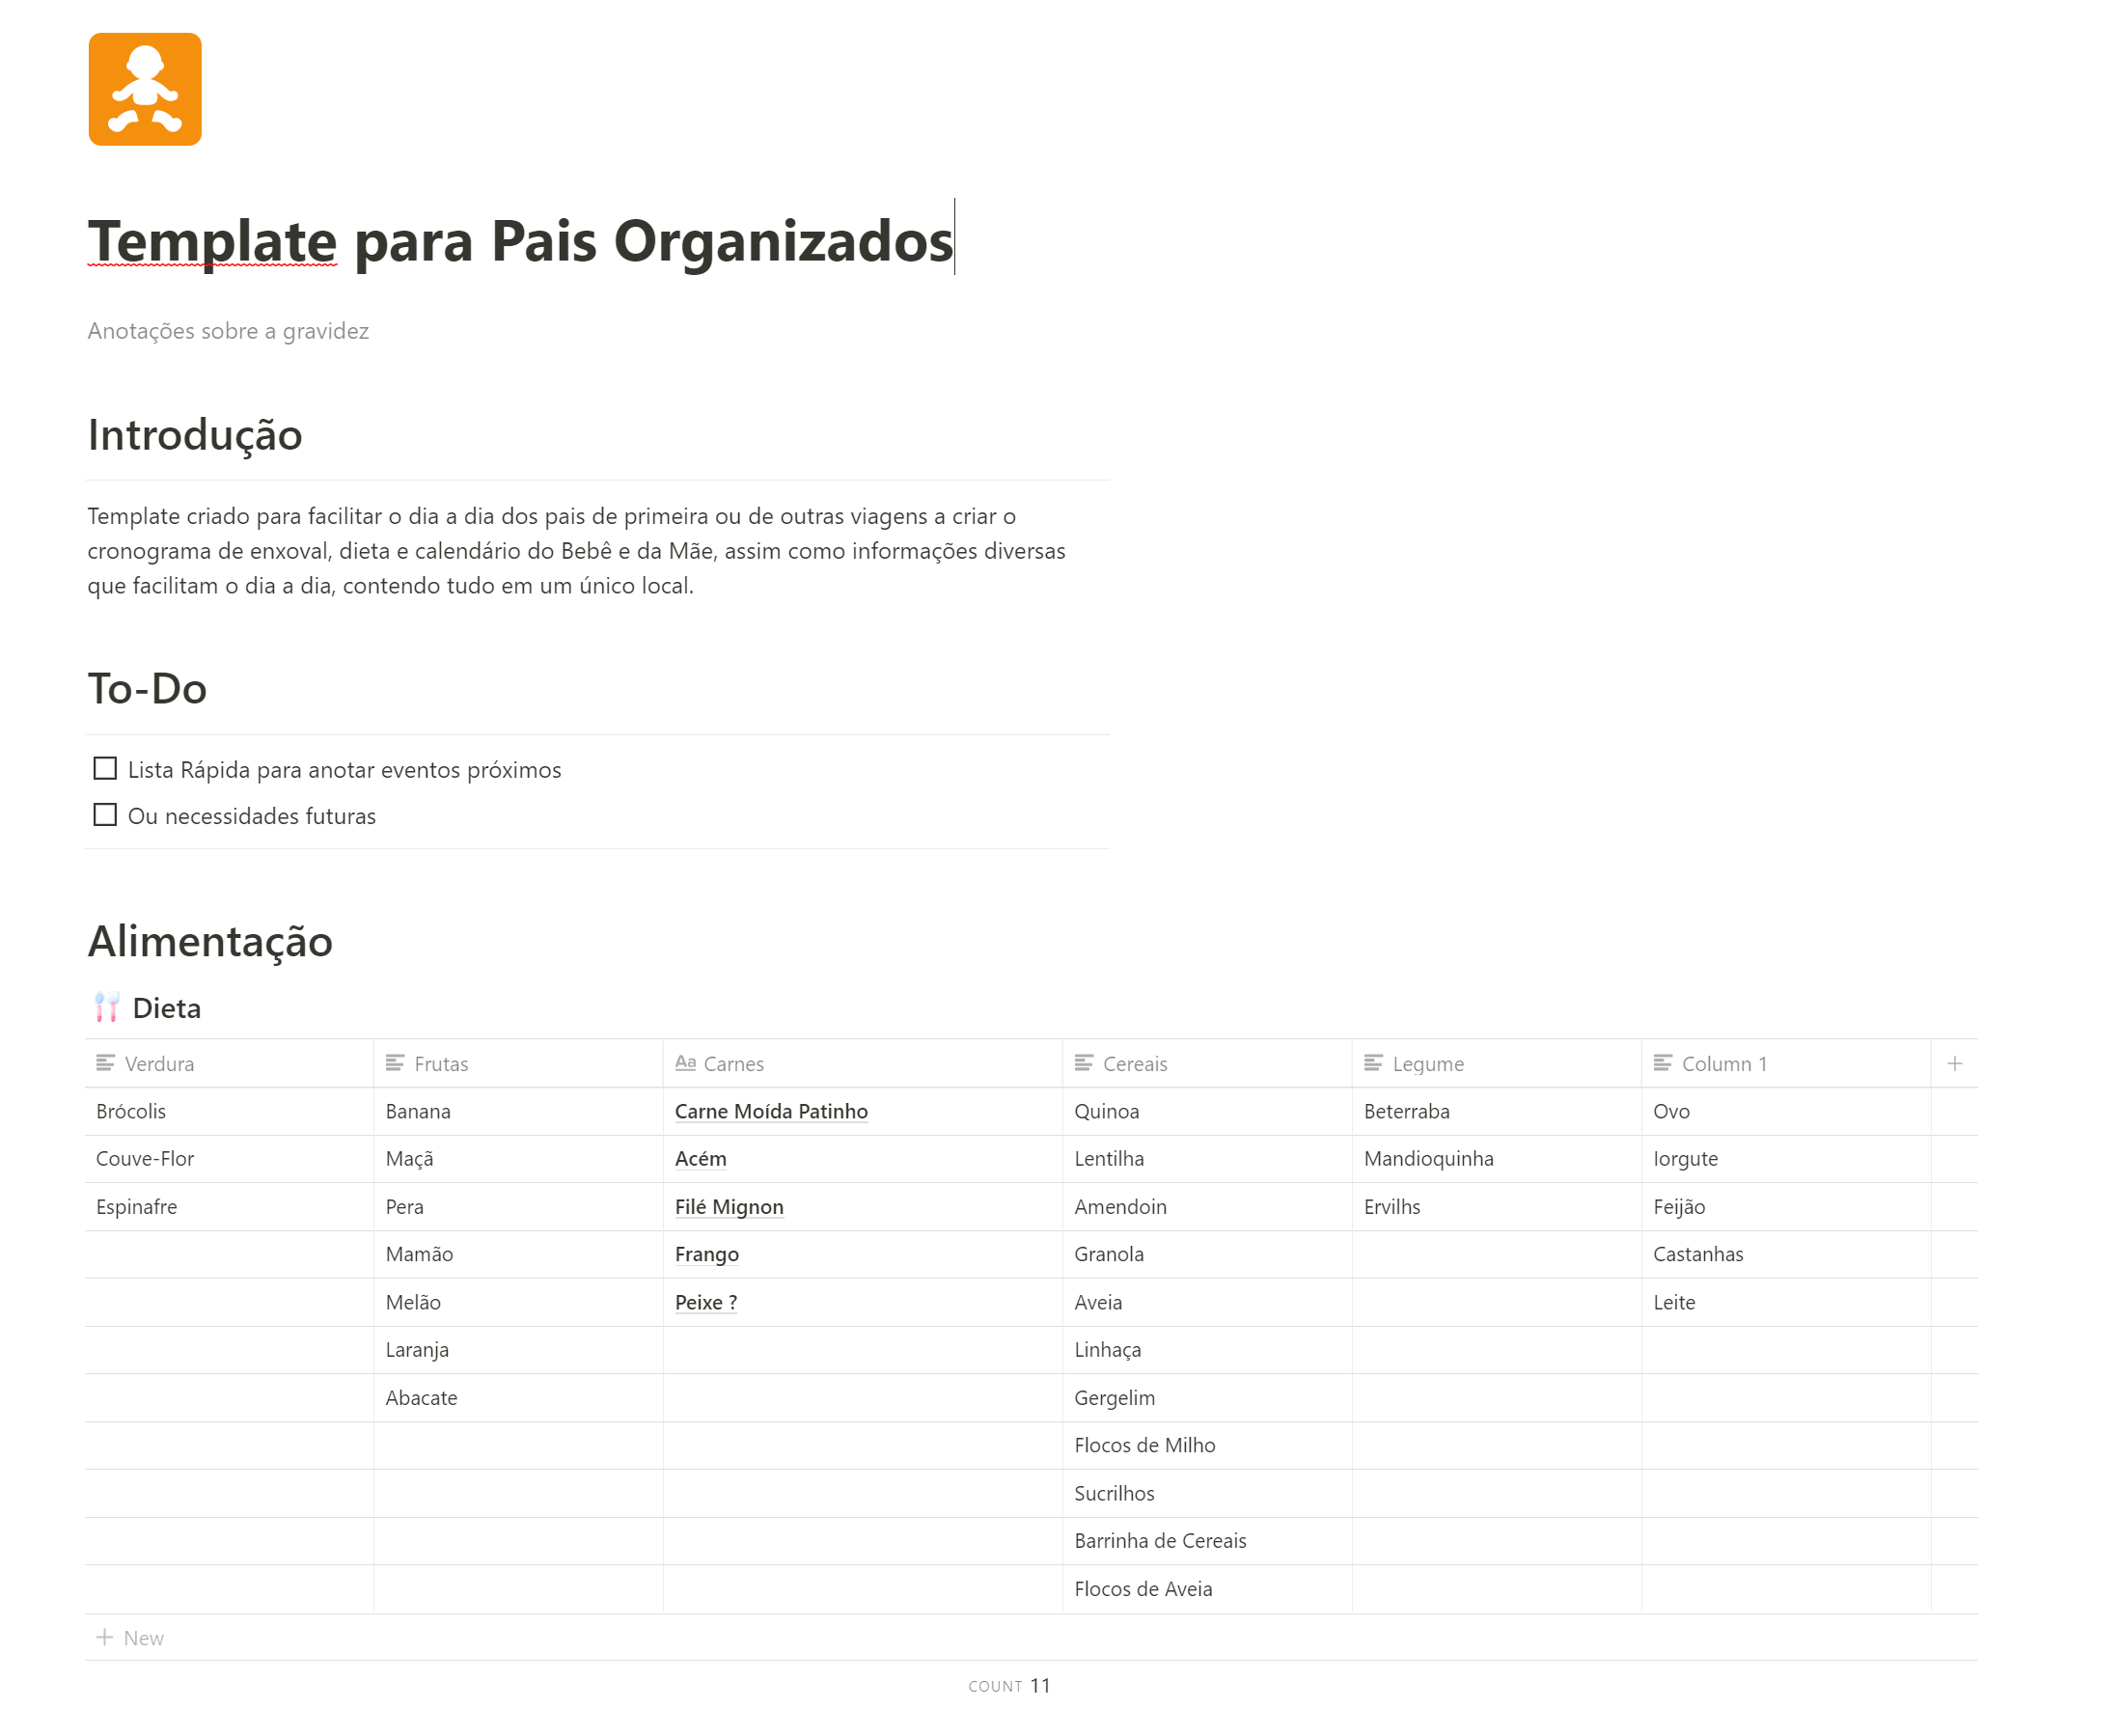 Template for Organized Parents